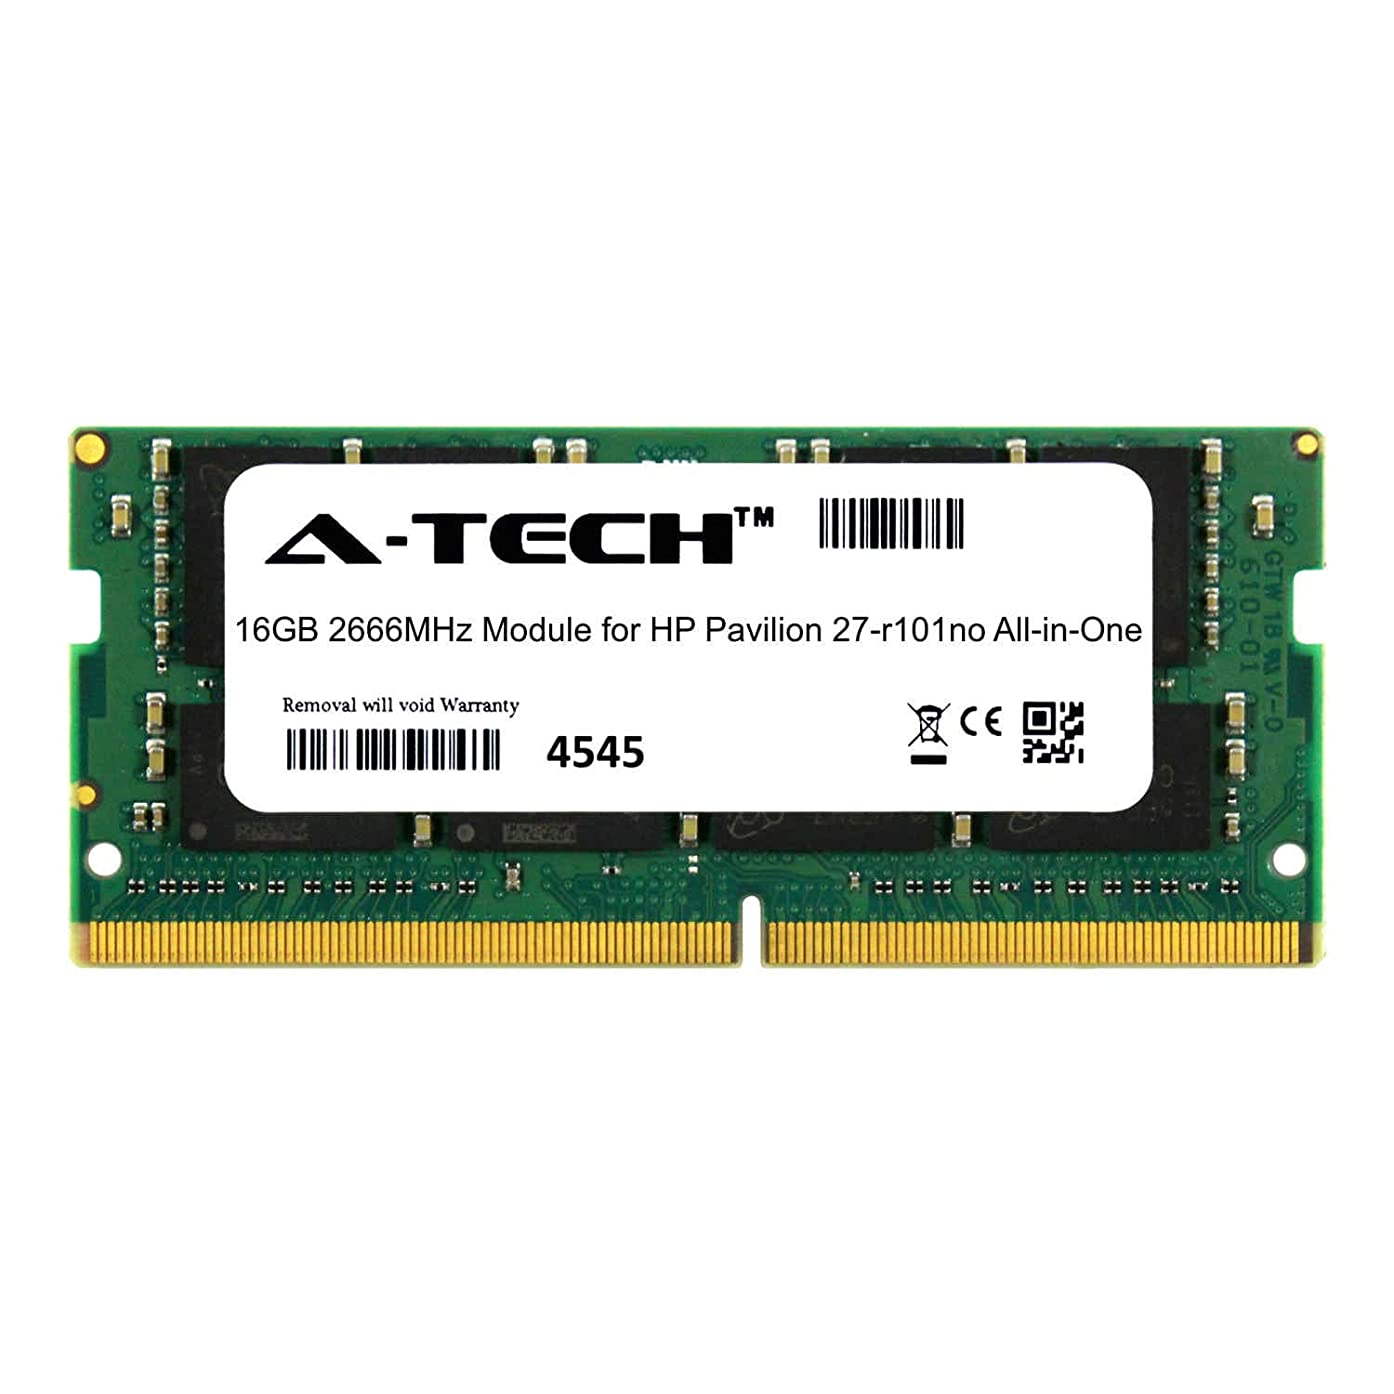 A-Tech 16GB Module for HP Pavilion 27-r101no All-in-One (AIO) Compatible DDR4 2666Mhz Memory Ram (ATMS306928A25832X1)